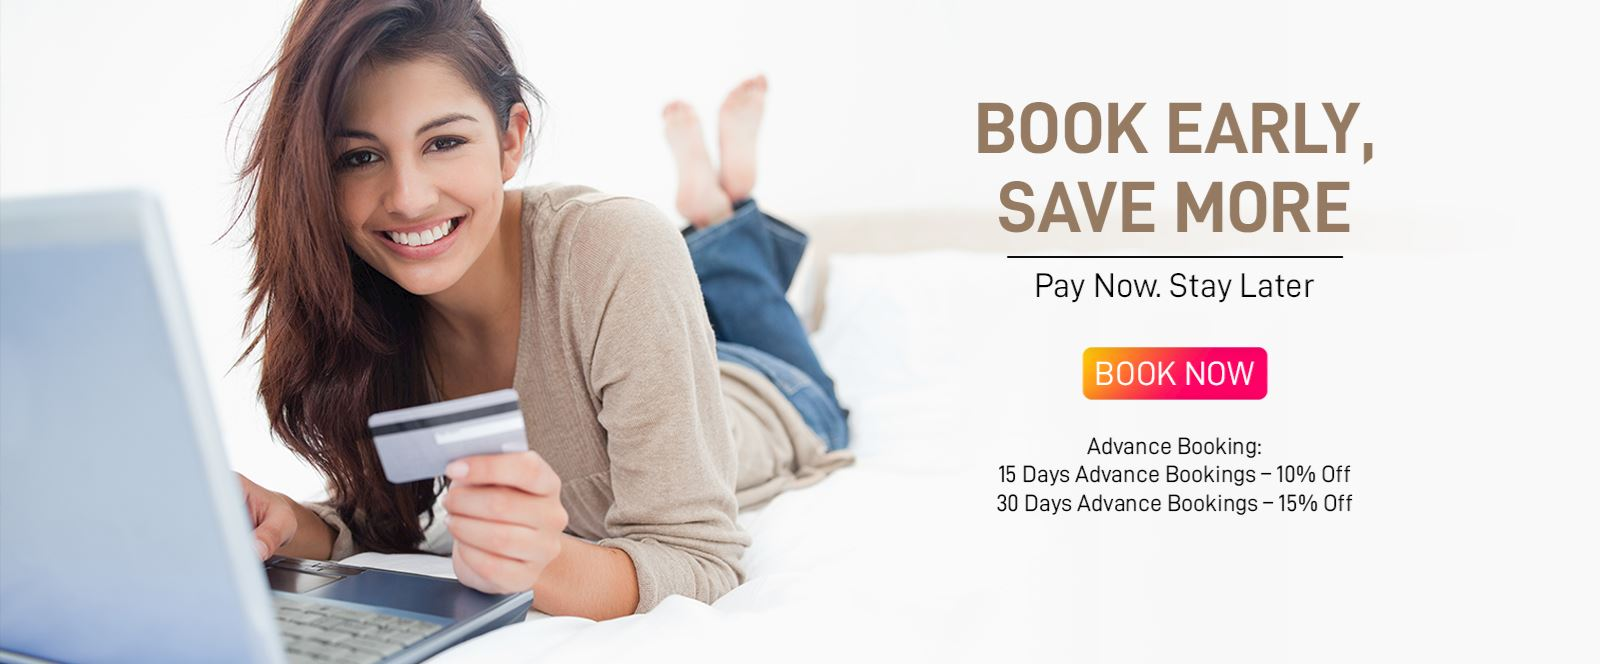 BOOK EARLY SAVE MORE